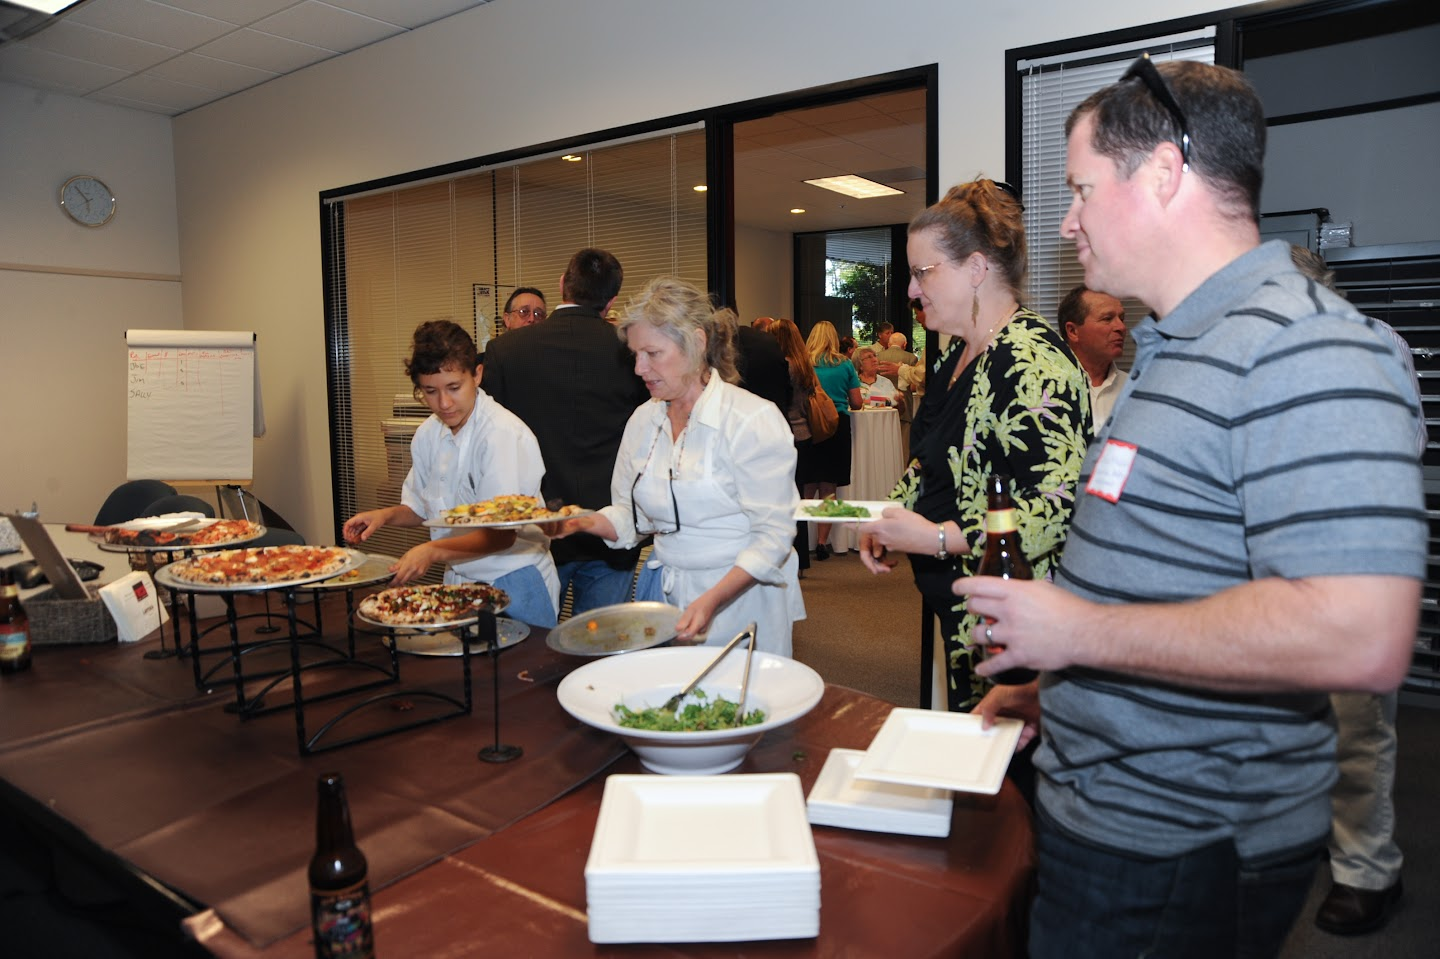 Rotary Means Business at Discovery Office with Rosso Pizzeria - DSC_6789.jpg